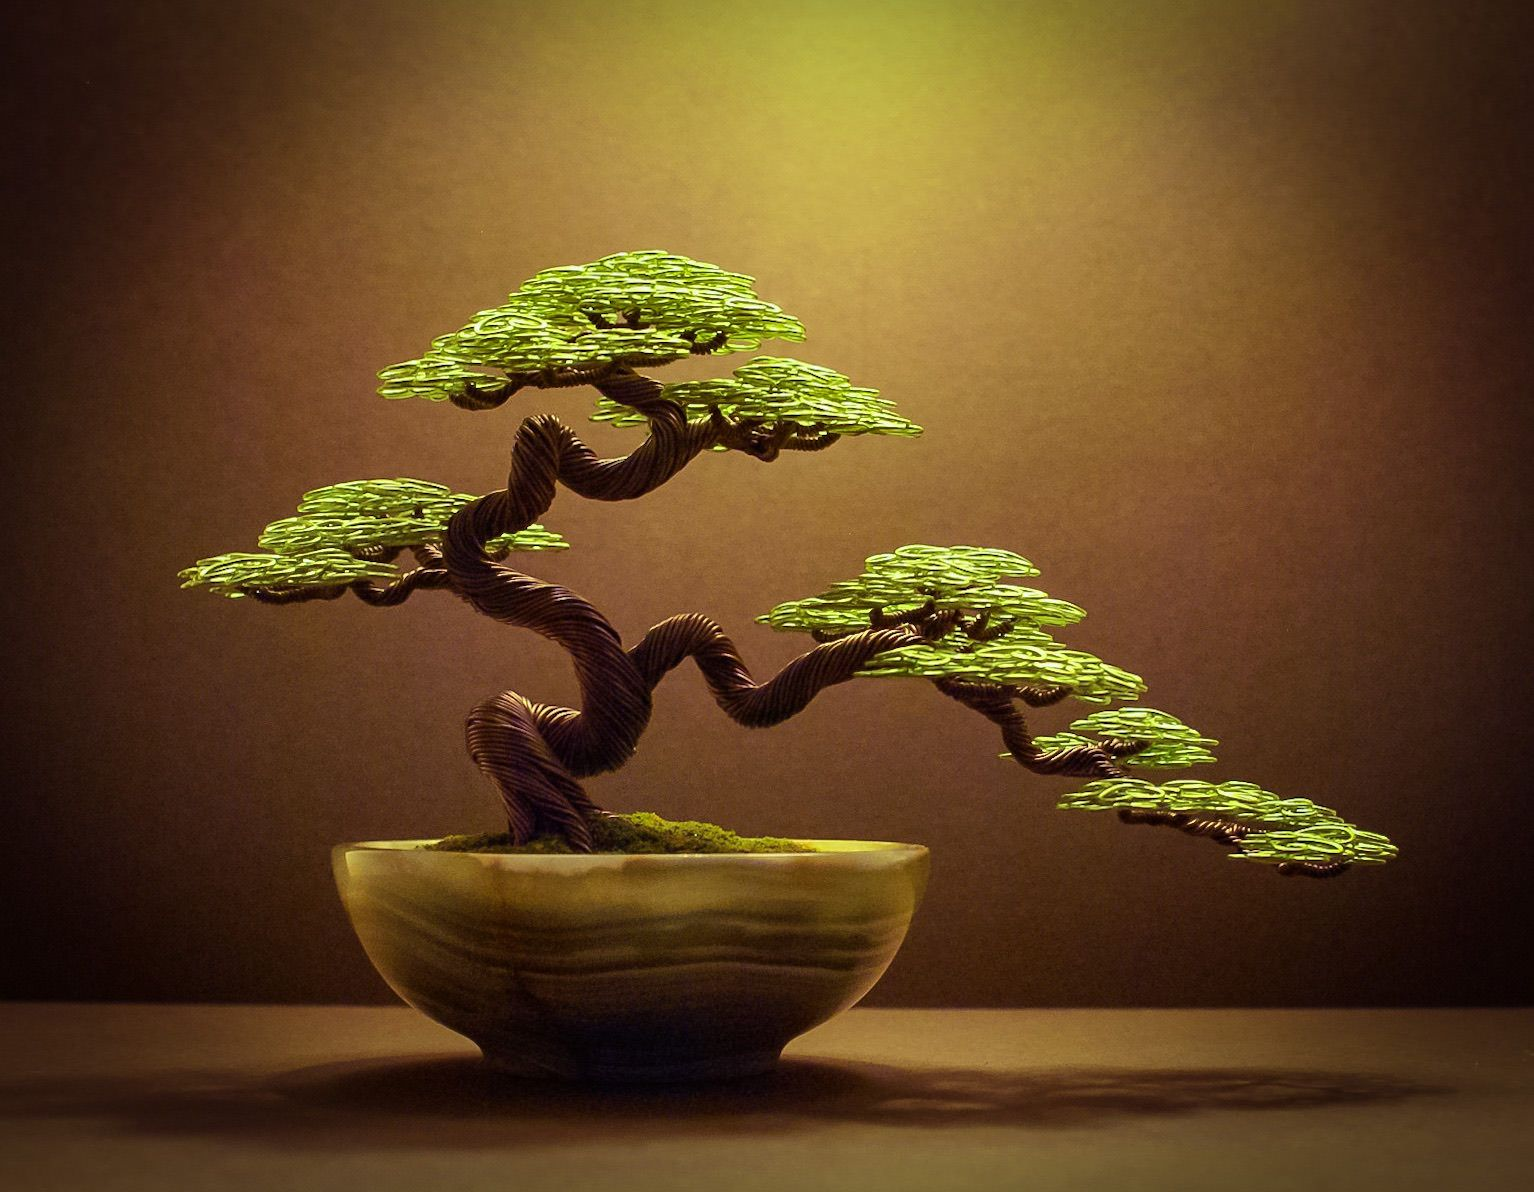 Pin By Jamey Hill On Funny Indoor Bonsai Tree Bonsai Tree Bonsai Tree Types